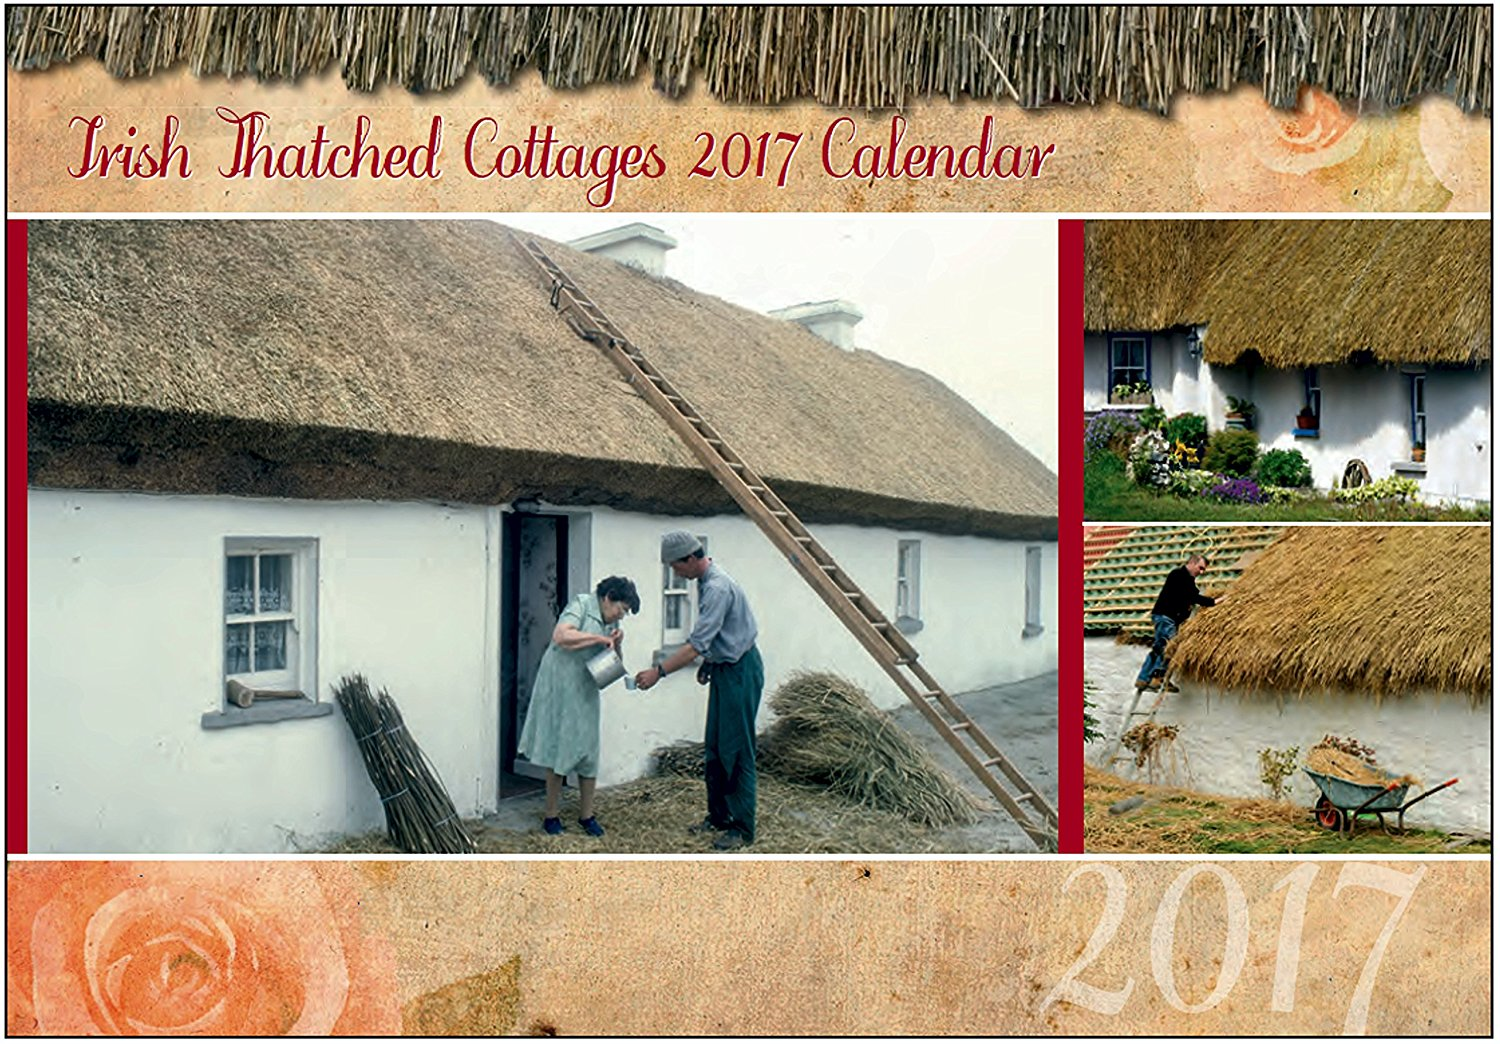 Irish Thatched Cottages wall Calendar 2017 - Made in Ireland